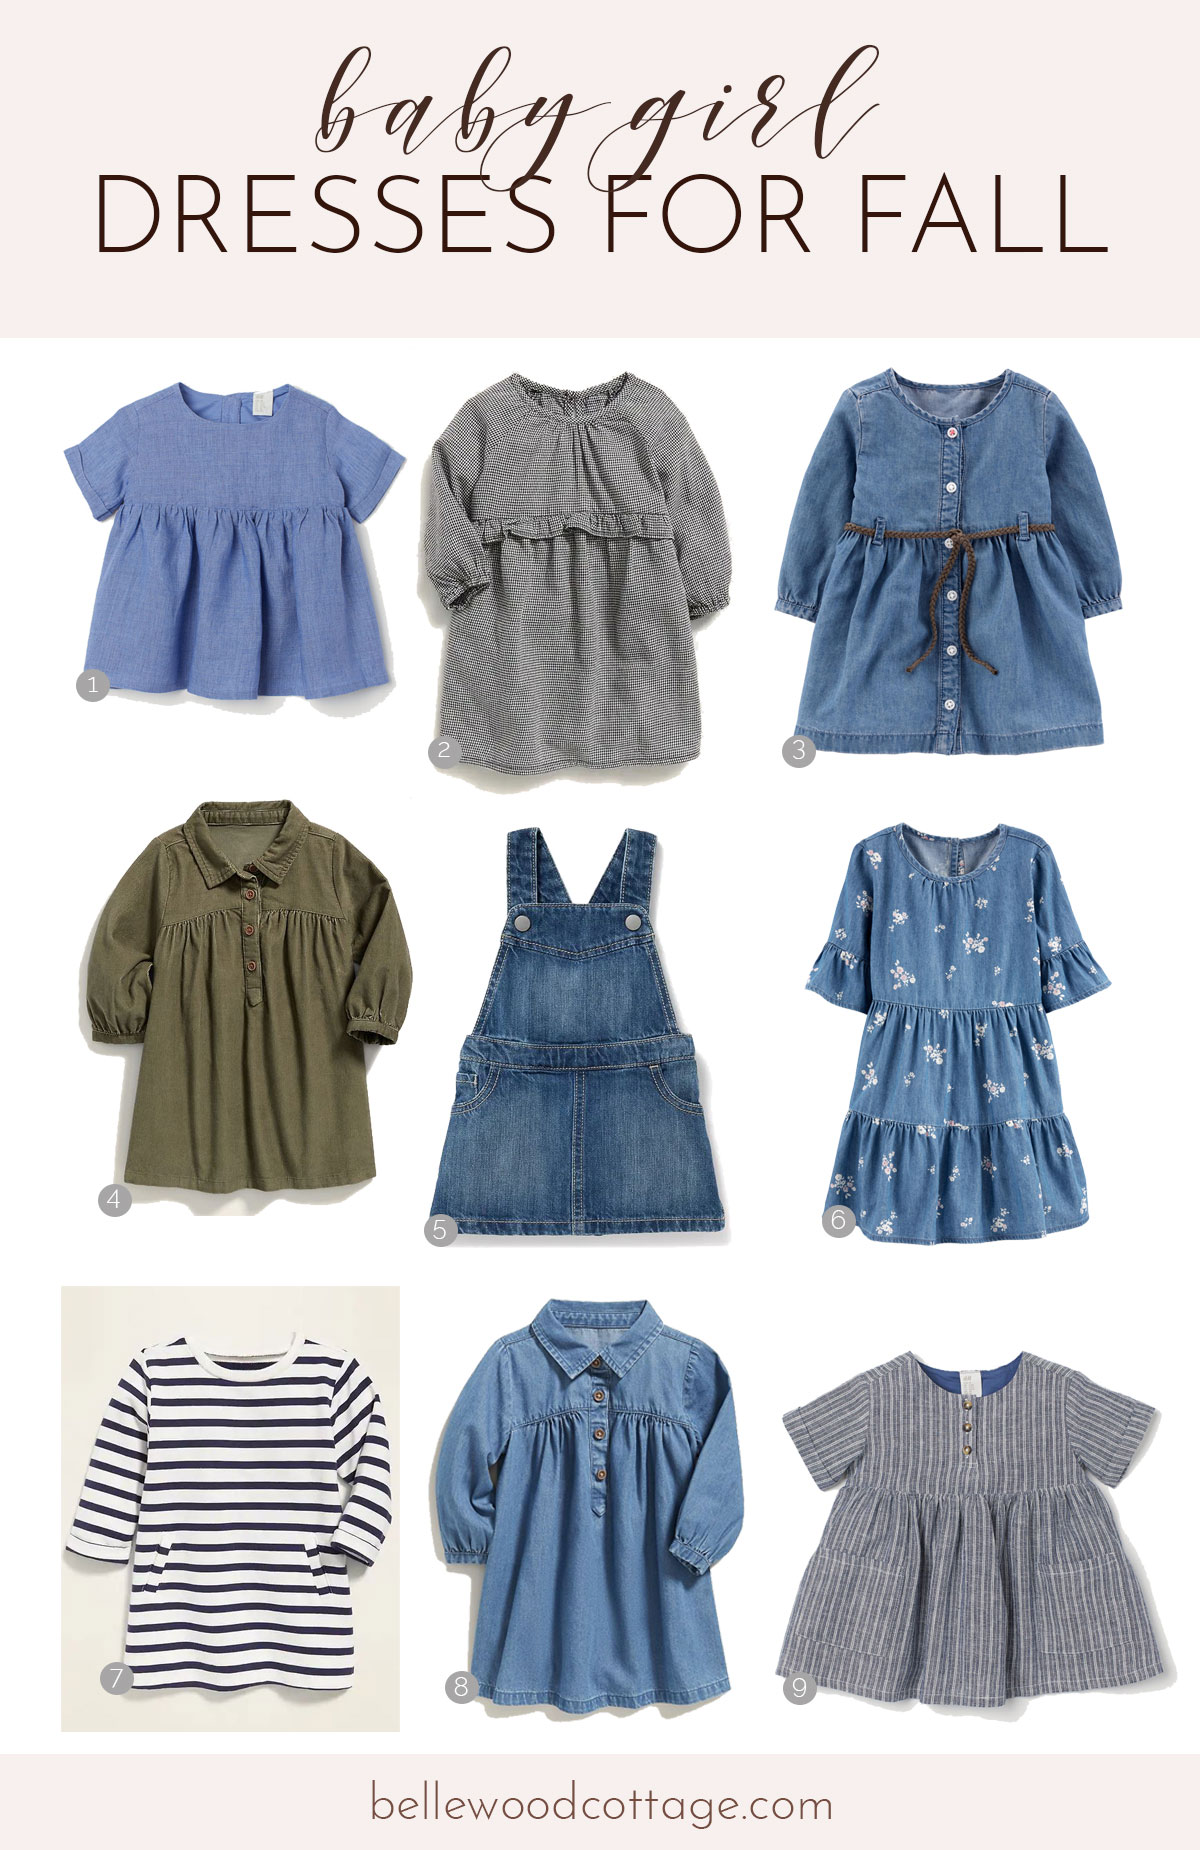 Nine baby girl dresses in blue and green colors in three by three rows.